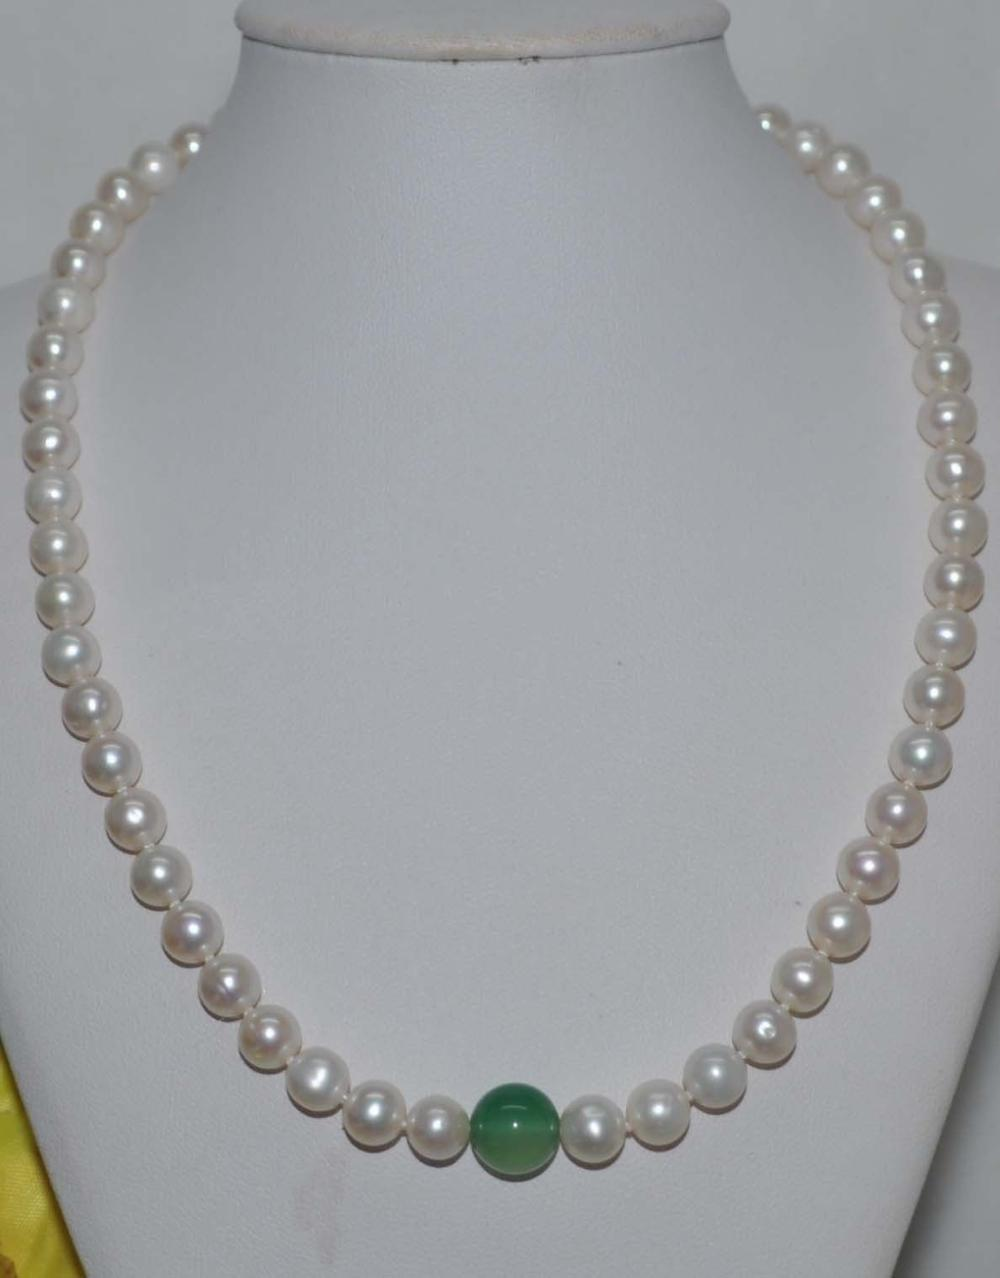 9 10mm Genuine White South Sea Green Jade Pearl Necklace 14k/20 Yellow Gold Clasp